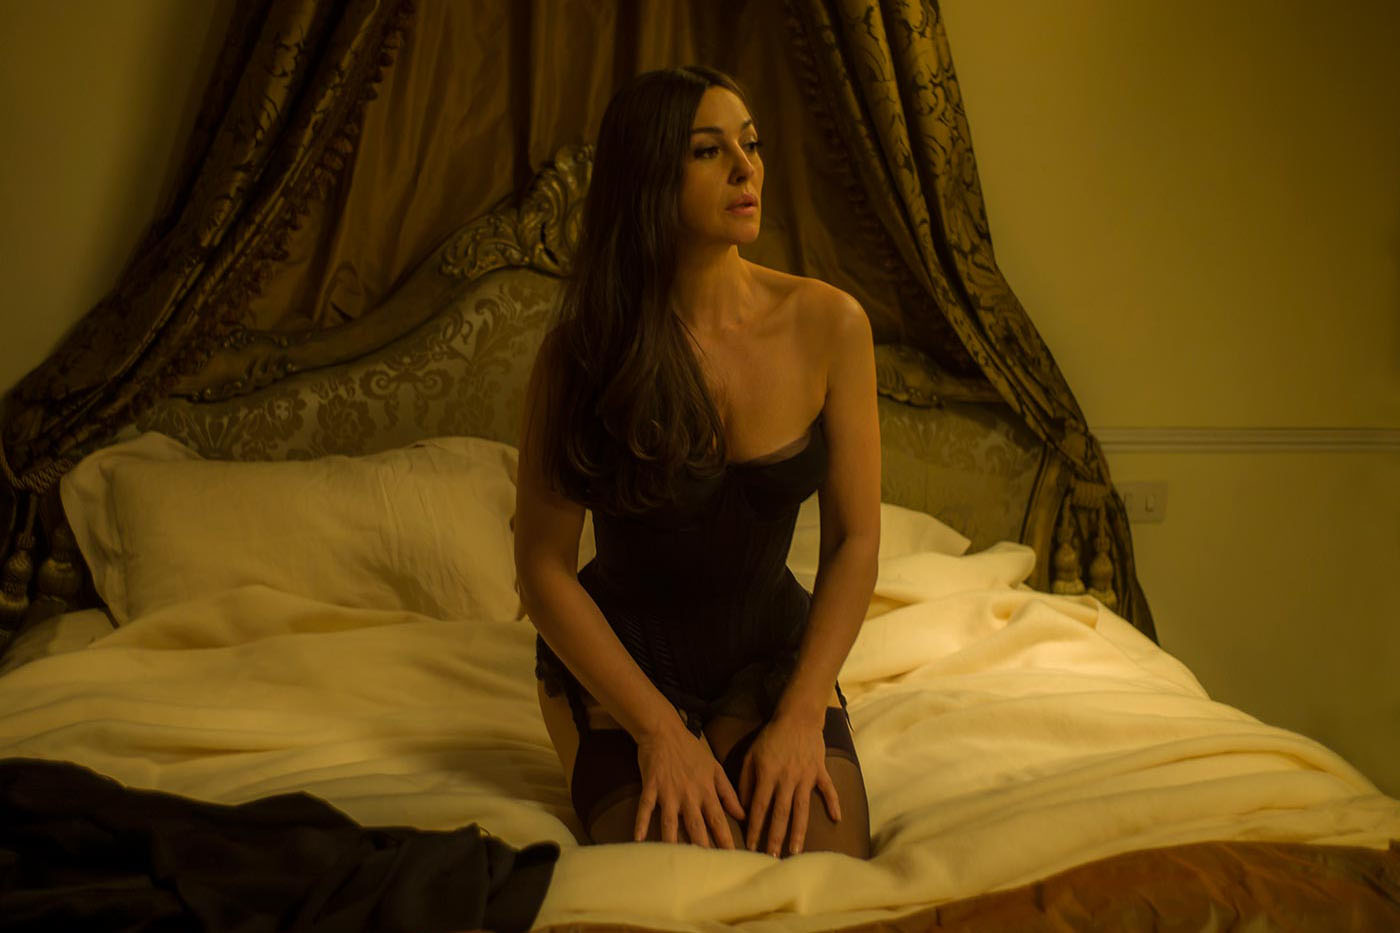 monica-bellucci-lucia-sciarra-bed-nightgown-spectre-2015